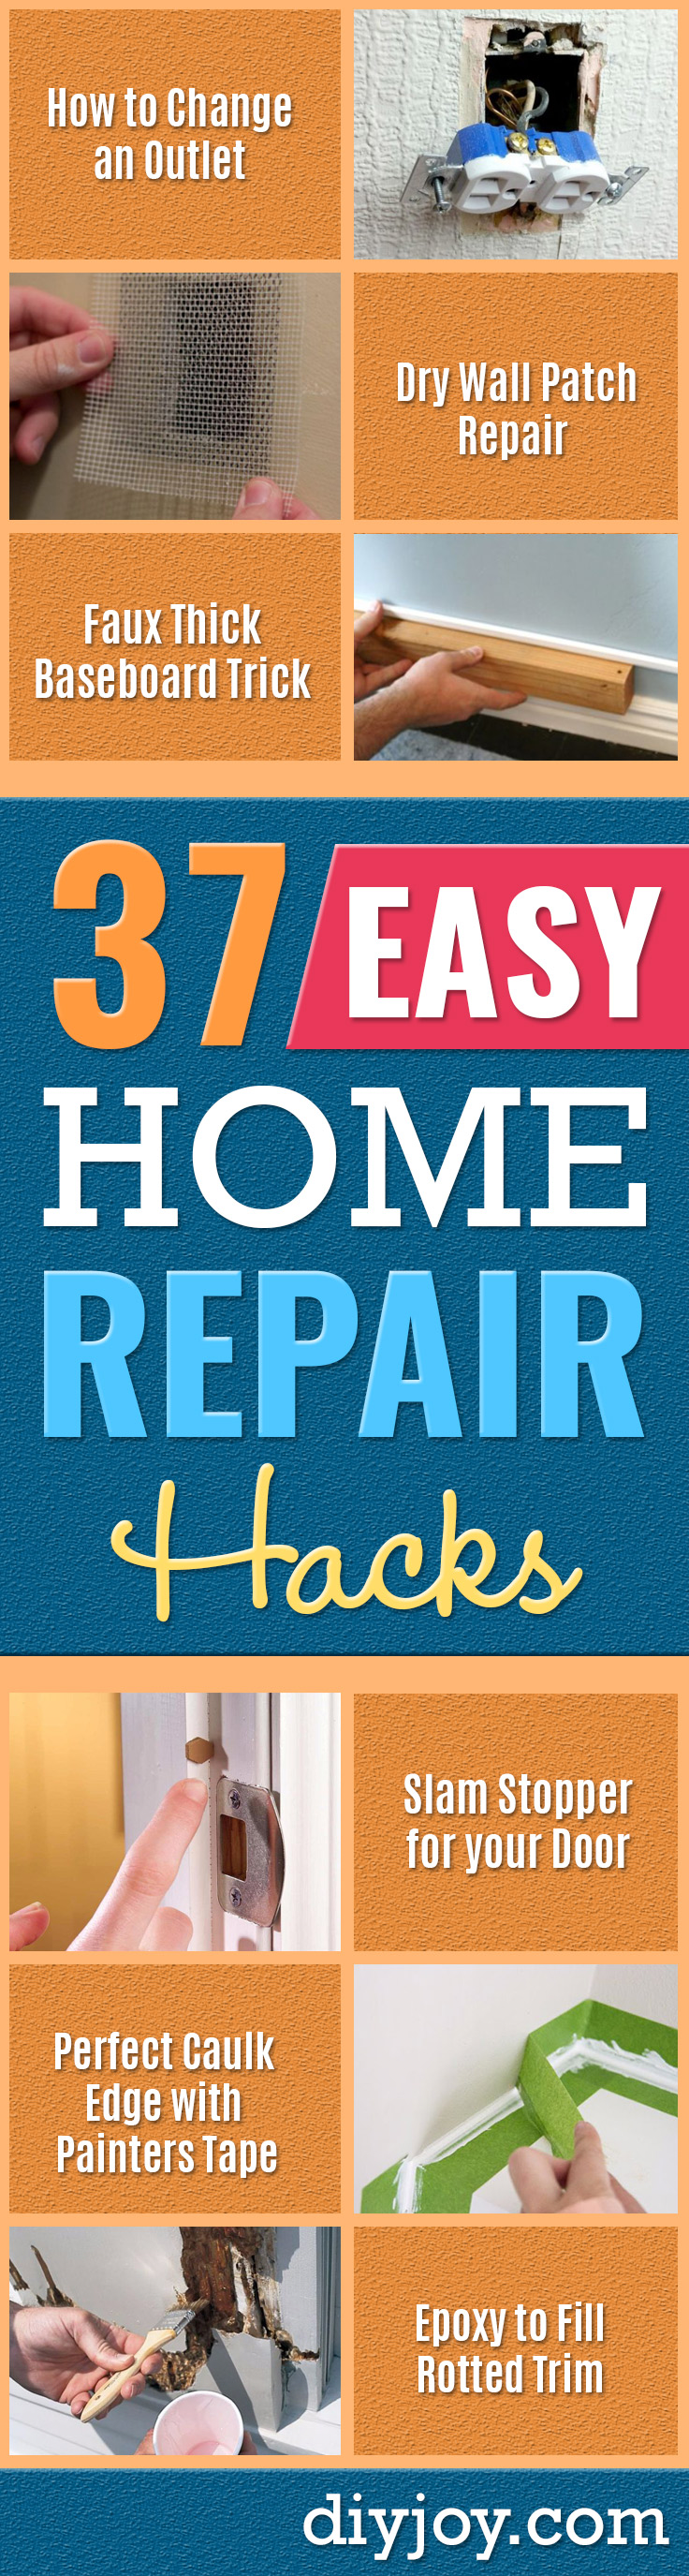 easy home repair projects diy home improvement ideas - Quick Ways To Fix Your Home With Cheap and Fast DIY Projects - Step by step Tutorials, Good Ideas for Renovating, Simple Tips and Tricks for Home Improvement on A Budget - Small Bathrooms, Kitchen, Bathroom, House